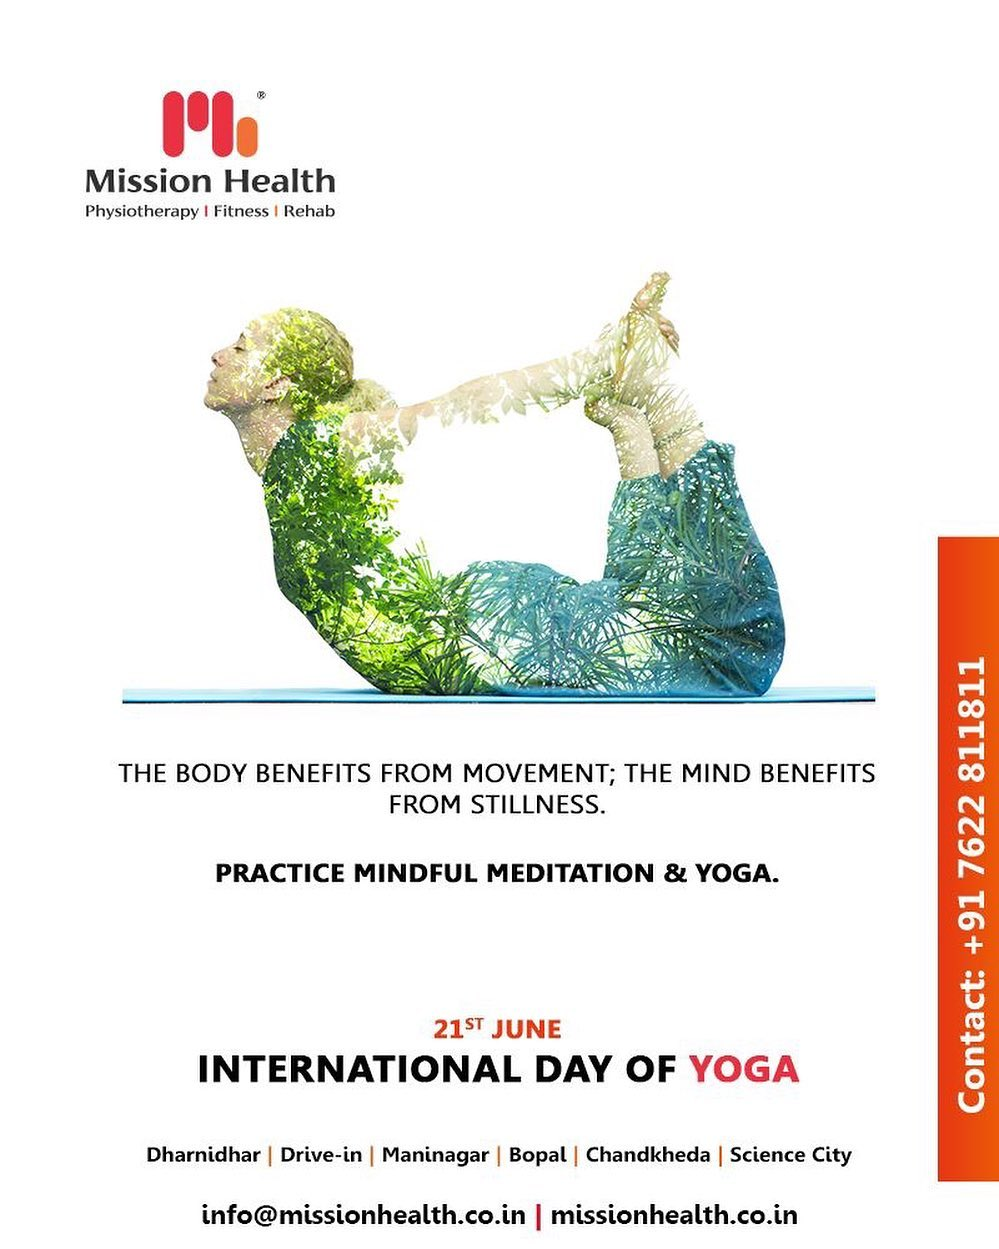 The body benefits from movement; the mind benefits from stillness. Practice mindful meditation & yoga.  #InternationalDayofYoga #InternationalYogaDay #YogaDay #YogaDay2019 #Yoga #IDY2019 #IYD2019 #MissionHealth #MissionHealthIndia #Physiotherapy #Rehab